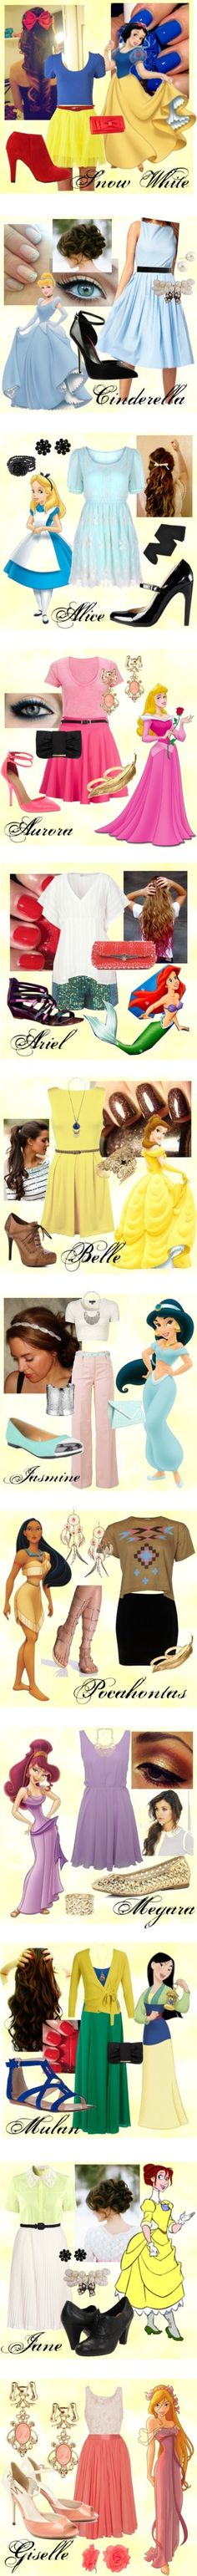 Jane, Meg, Cinderella, Snow White And Alice, This Will Be Good To Remember For Last Minute Fancy Dress Parties!